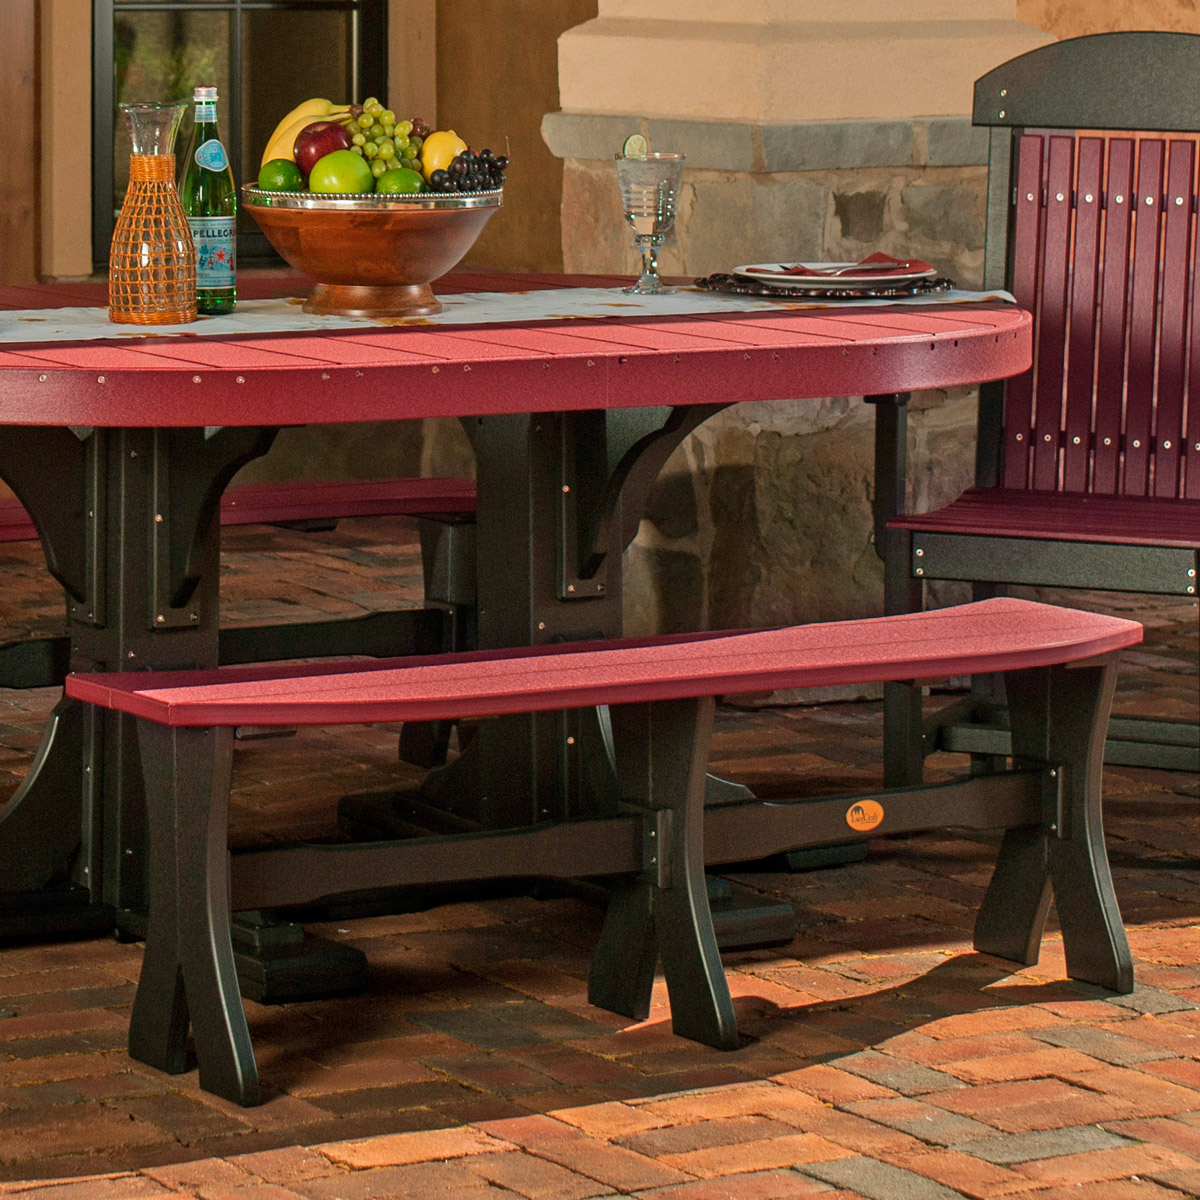 52 table bench luxcraft for Table 52 2016